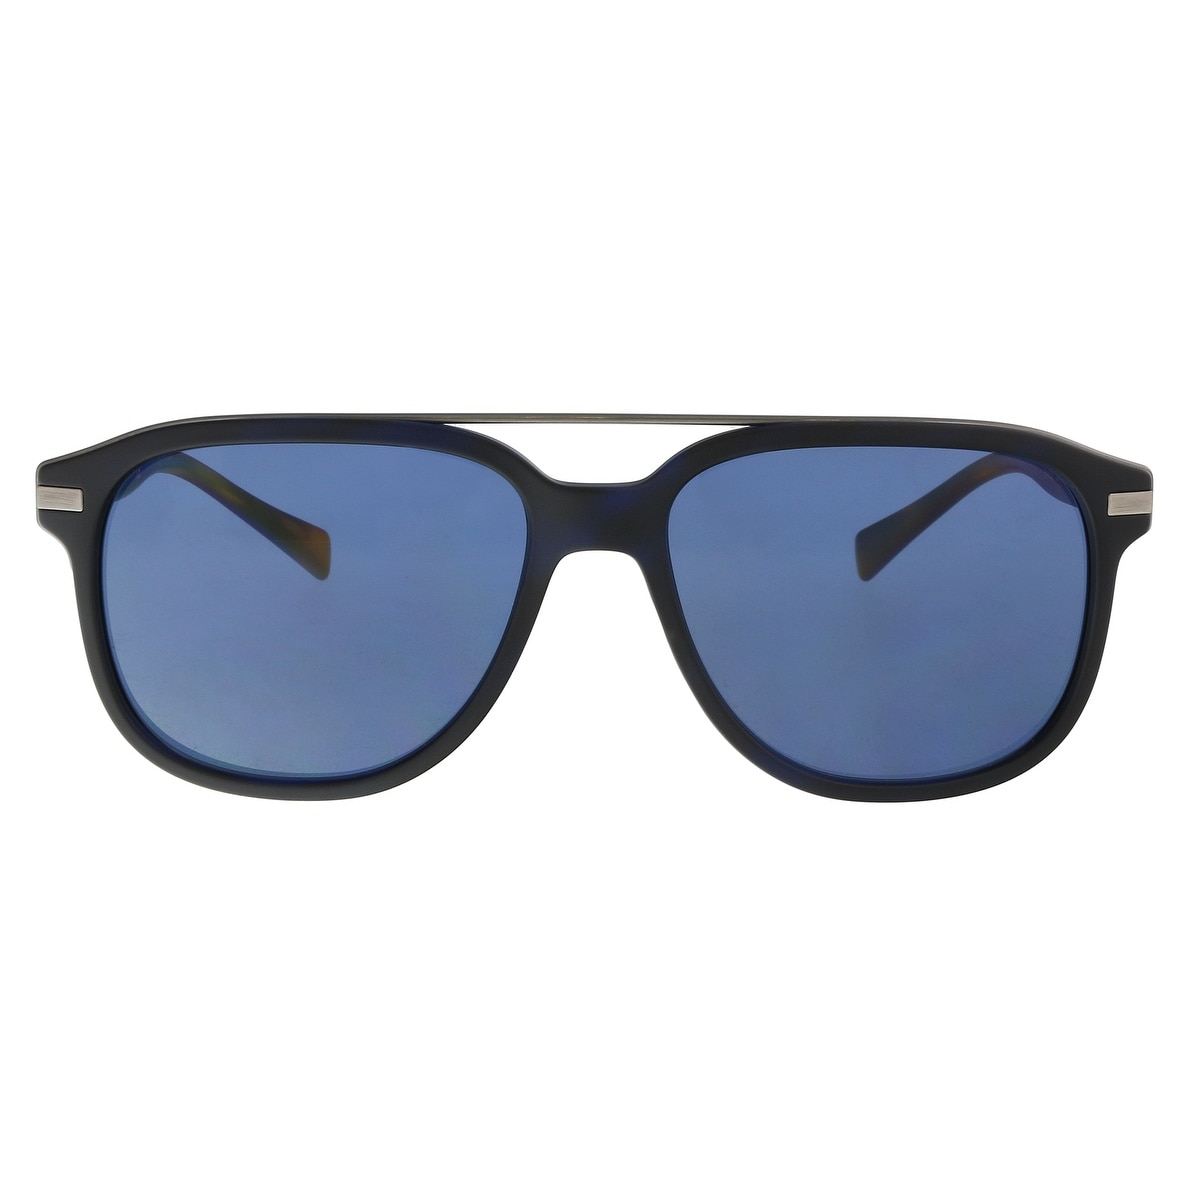 282ecfdbfbff Shop Burberry BE4233 362180 Matte Blue Havana Rectangle Sunglasses -  57-16-145 - Free Shipping Today - Overstock - 21158081